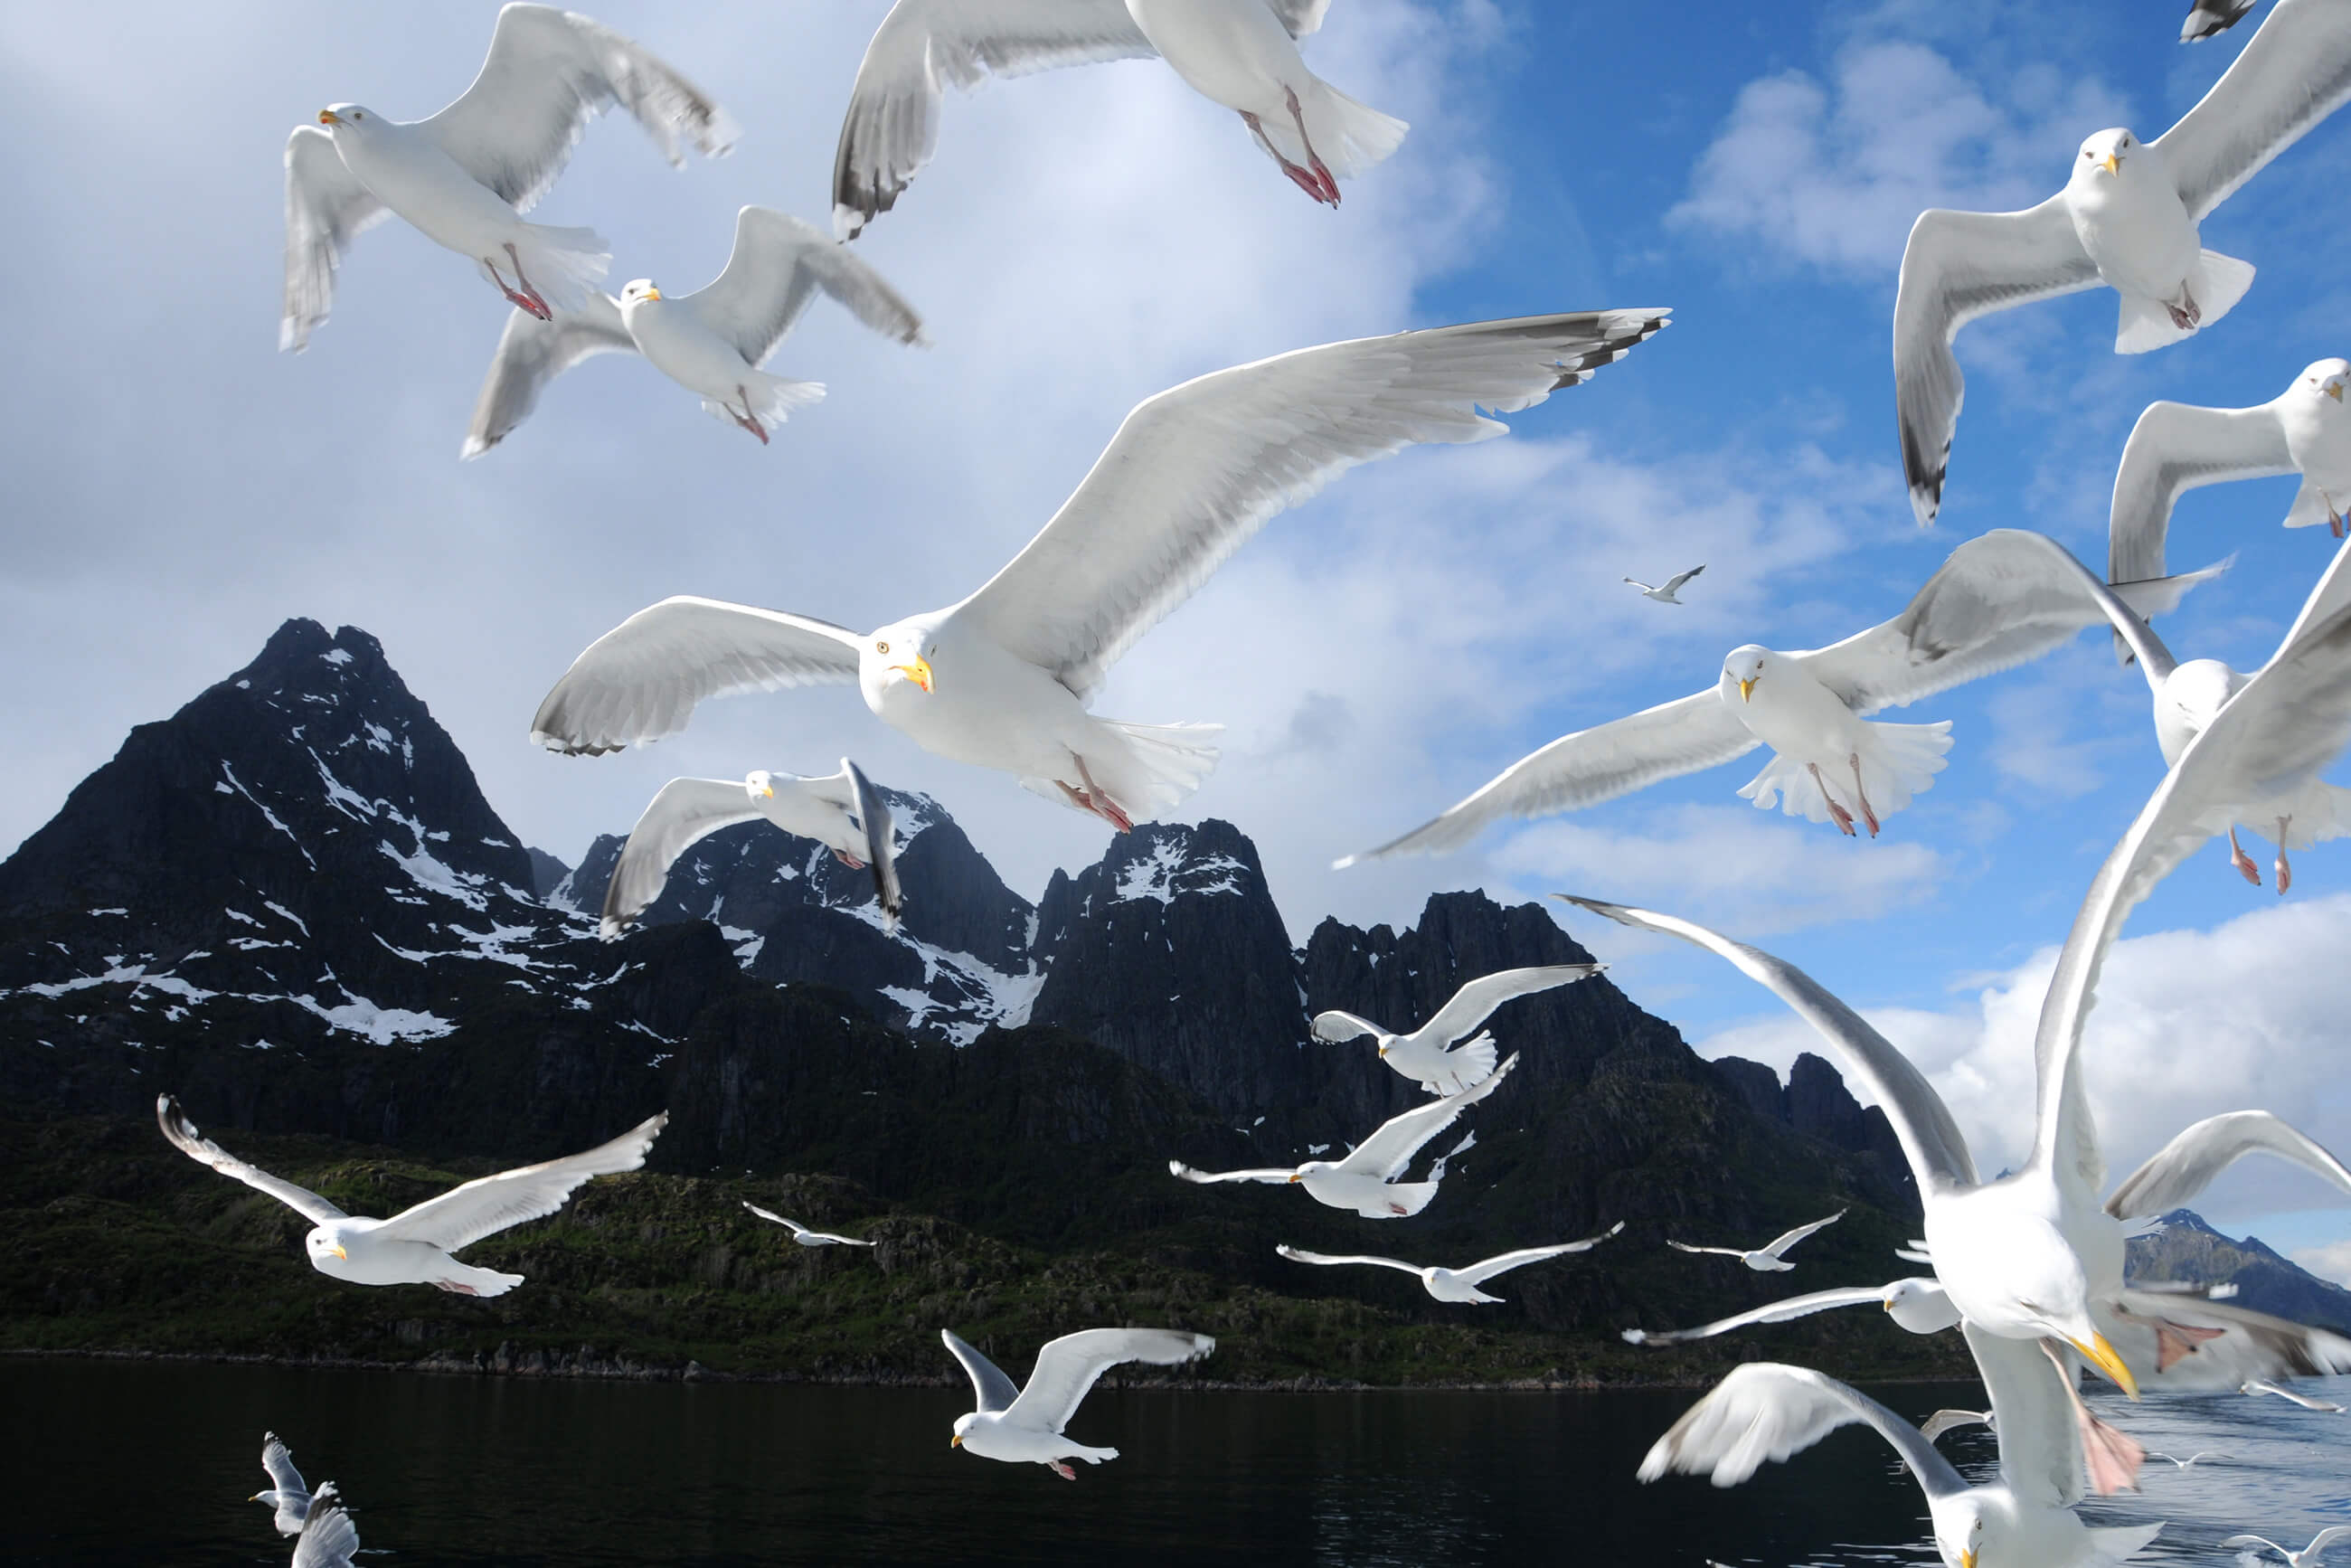 https://bubo.sk/uploads/galleries/5043/seagulls-trollfjorden-norway-hgr-109856--photo_photo_competition-1-.jpg